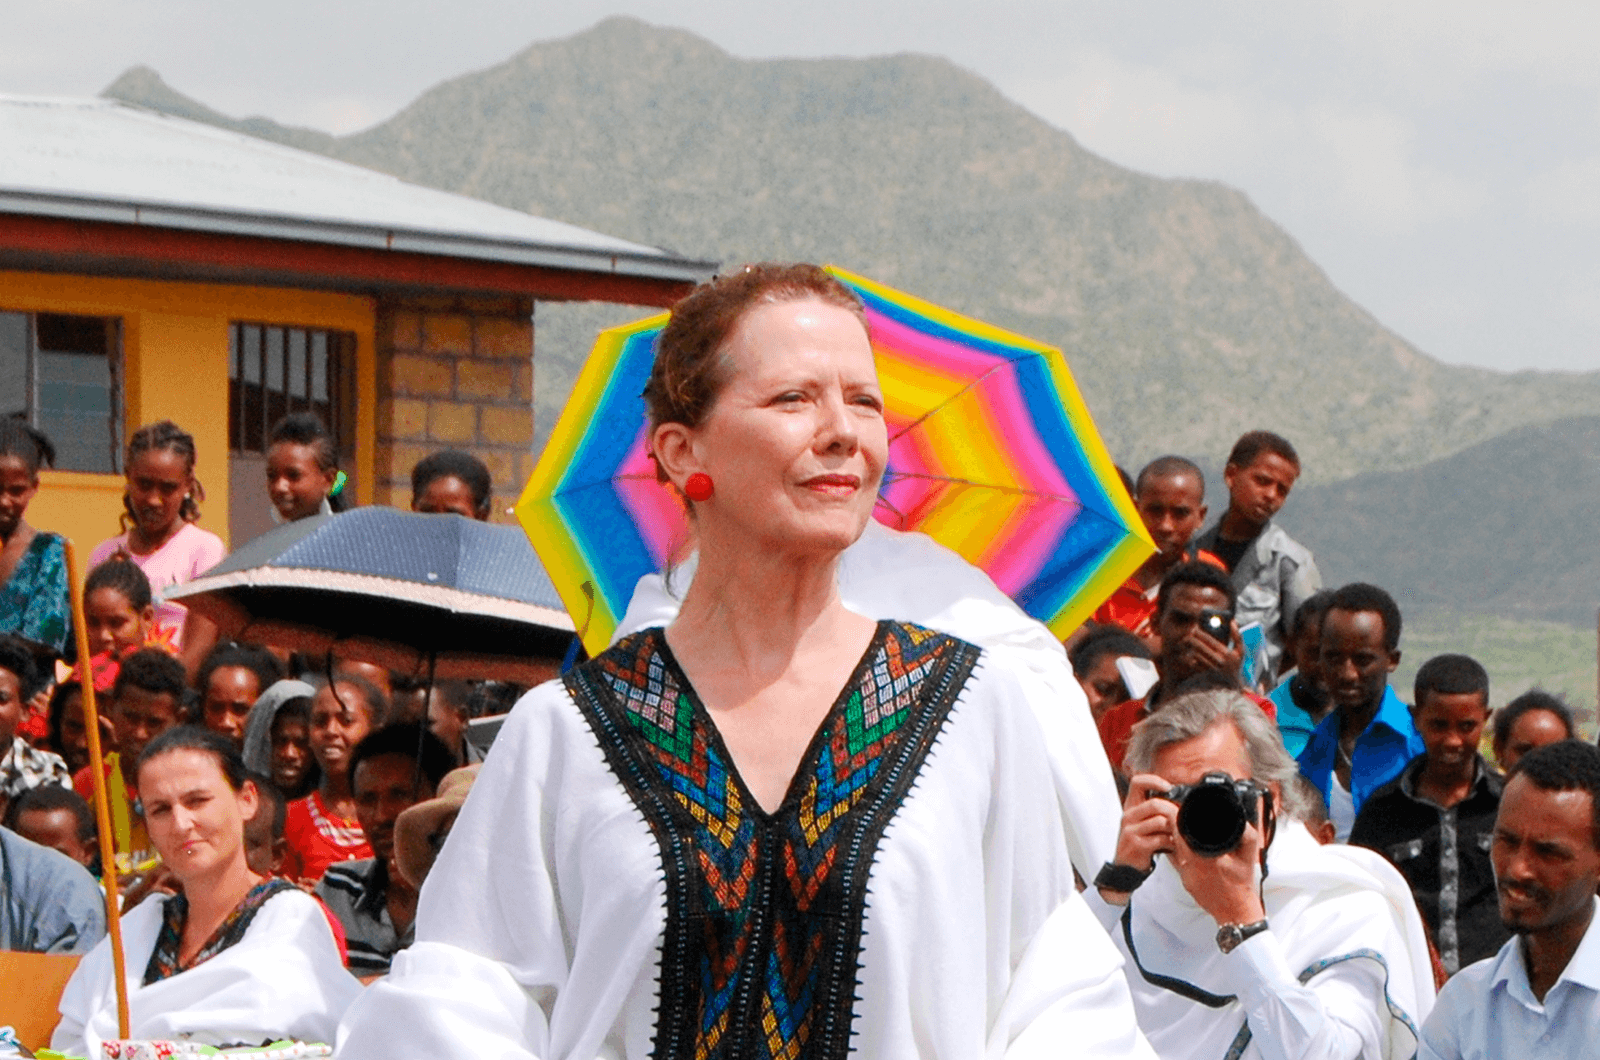 Lesley Stephenson at the opening of new school buildings at Lemlem Baro School in Mehoni, Ethiopia. Photos courtesy of Ethiopian Enterprises